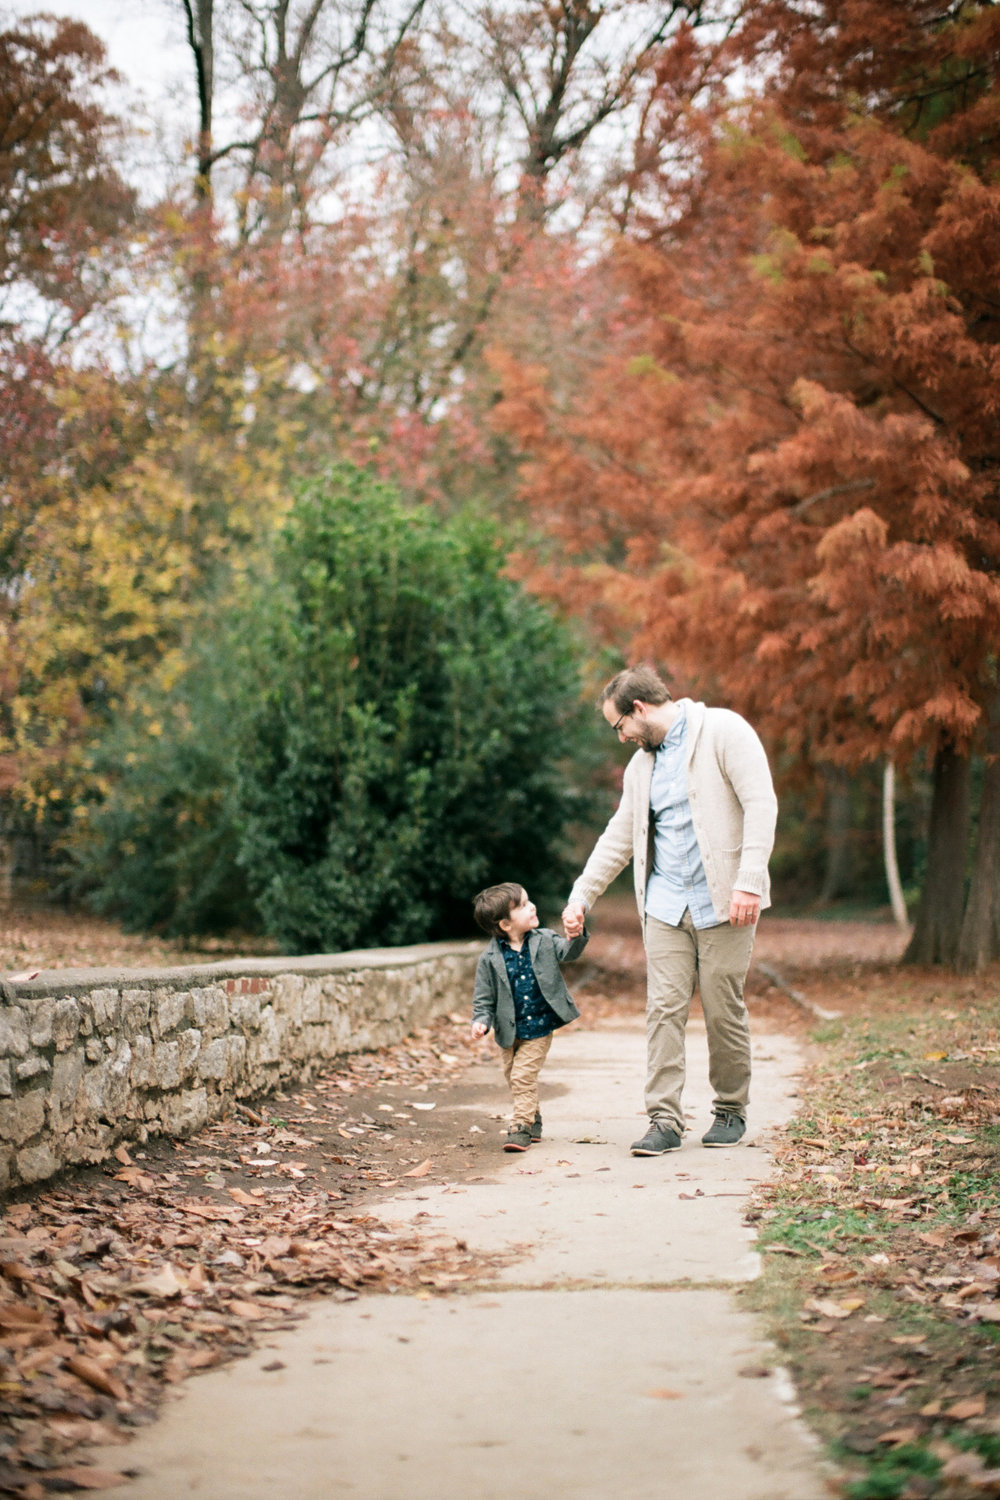 Four Corners Photography Atlanta Best Wedding Photographer Atlanta Best Newborn Photographer Atlanta Elopment Atlanta Maternity Photographer Wedding Photographer Southeast Fine Art Photography Atlanta Year in Review 2016 GABE-5.jpg